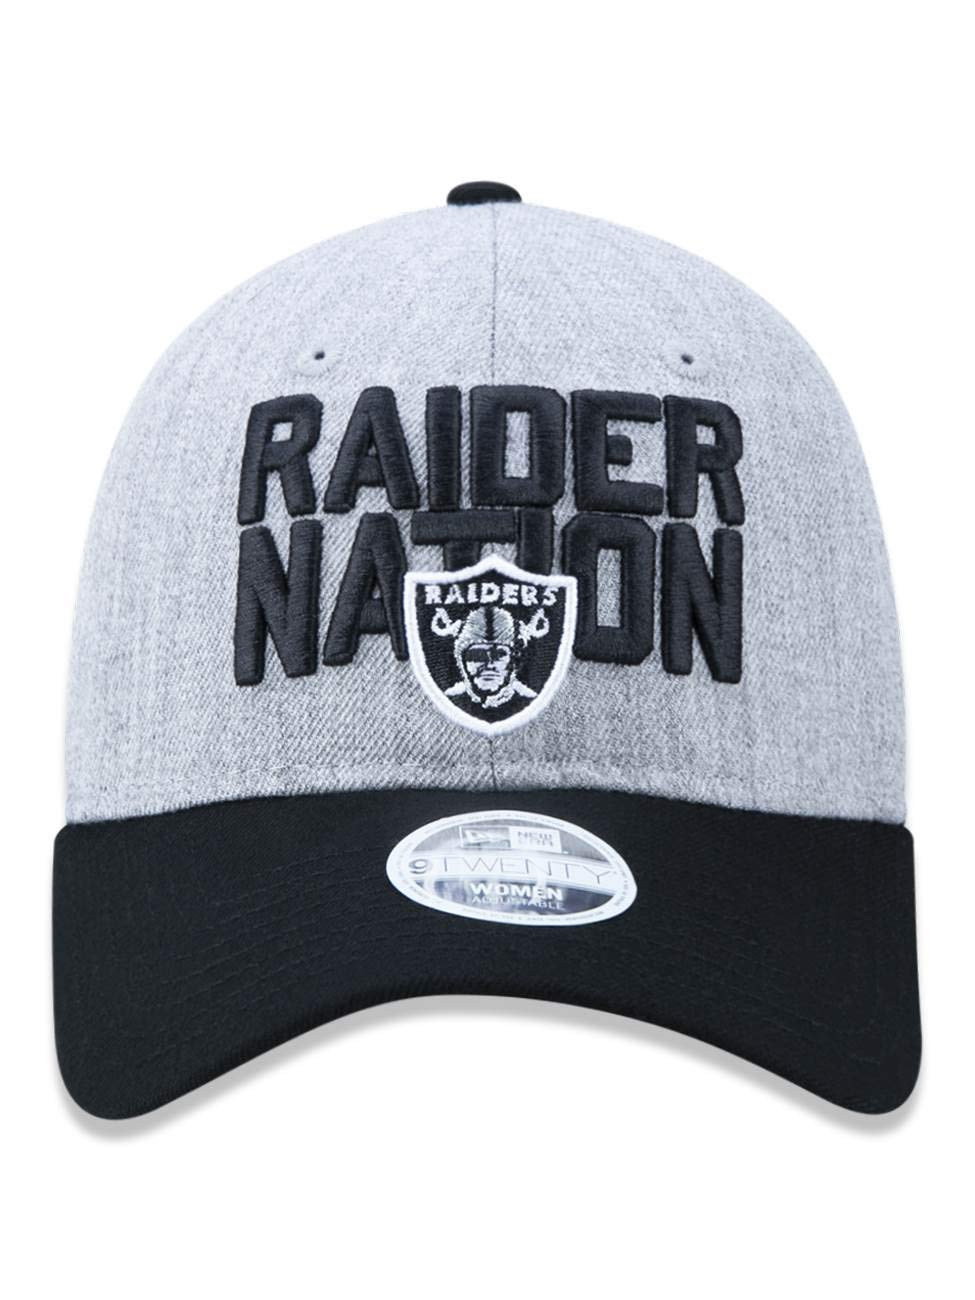 BONE 920 OAKLAND RAIDERS NFL ABA CURVA MESCLA CINZA NEW ERA  Amazon.com.br   Amazon Moda 486f28e3879